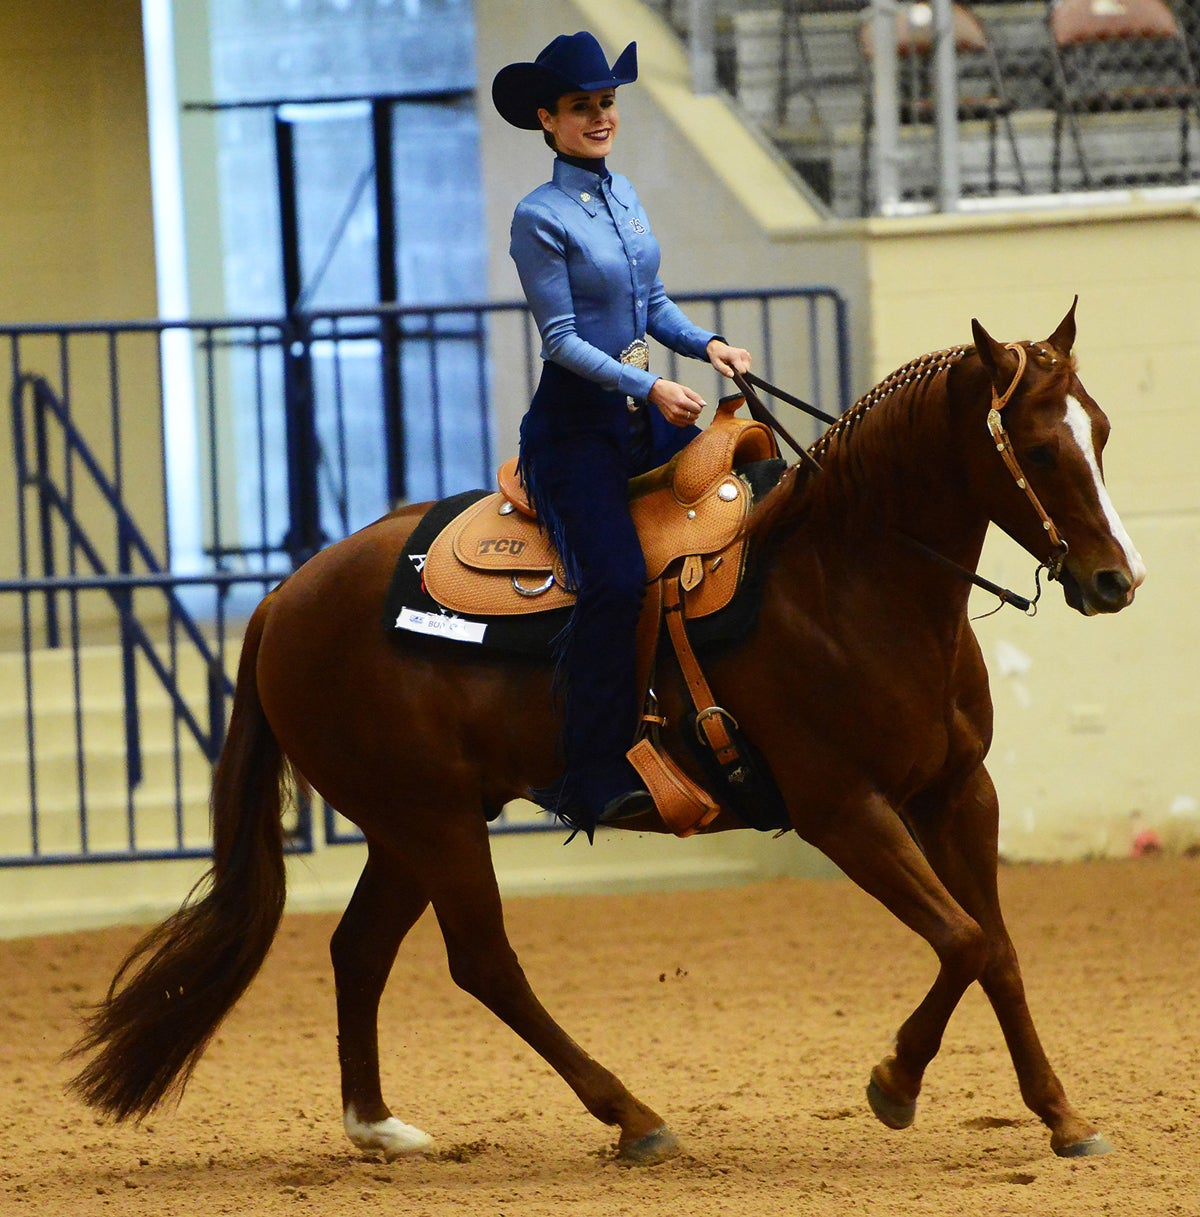 Equestrian Team Wins National Championship